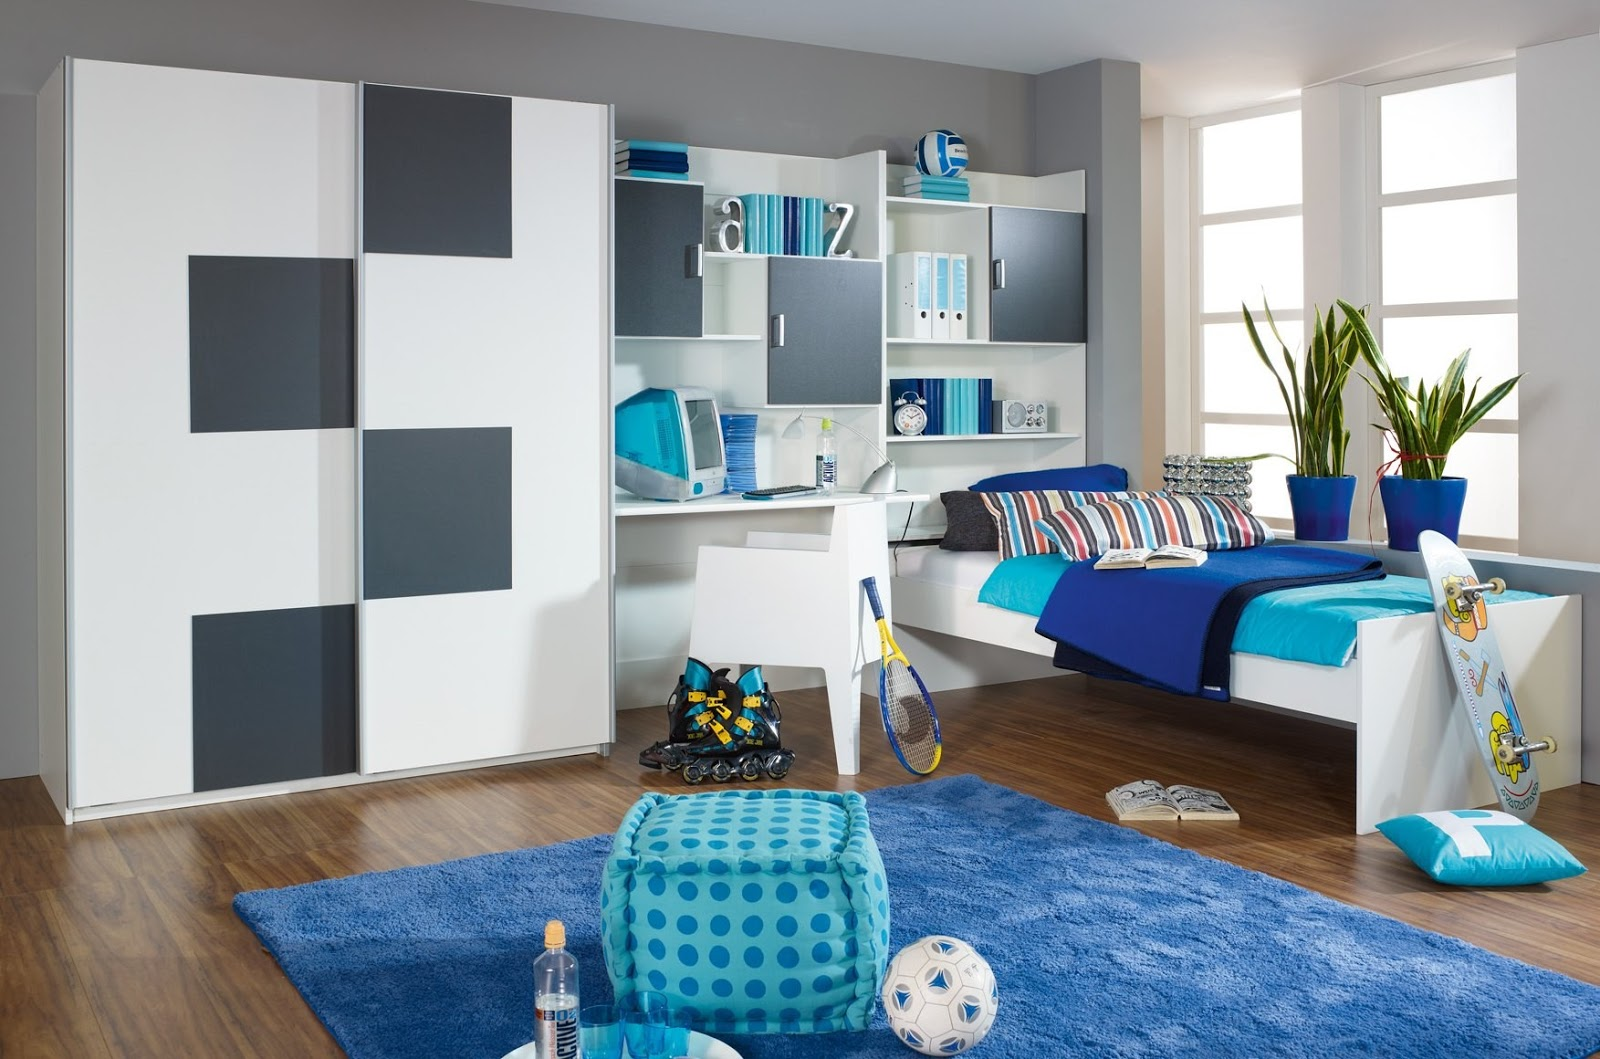 chambre enfant b b et d coration chambre b b sant. Black Bedroom Furniture Sets. Home Design Ideas